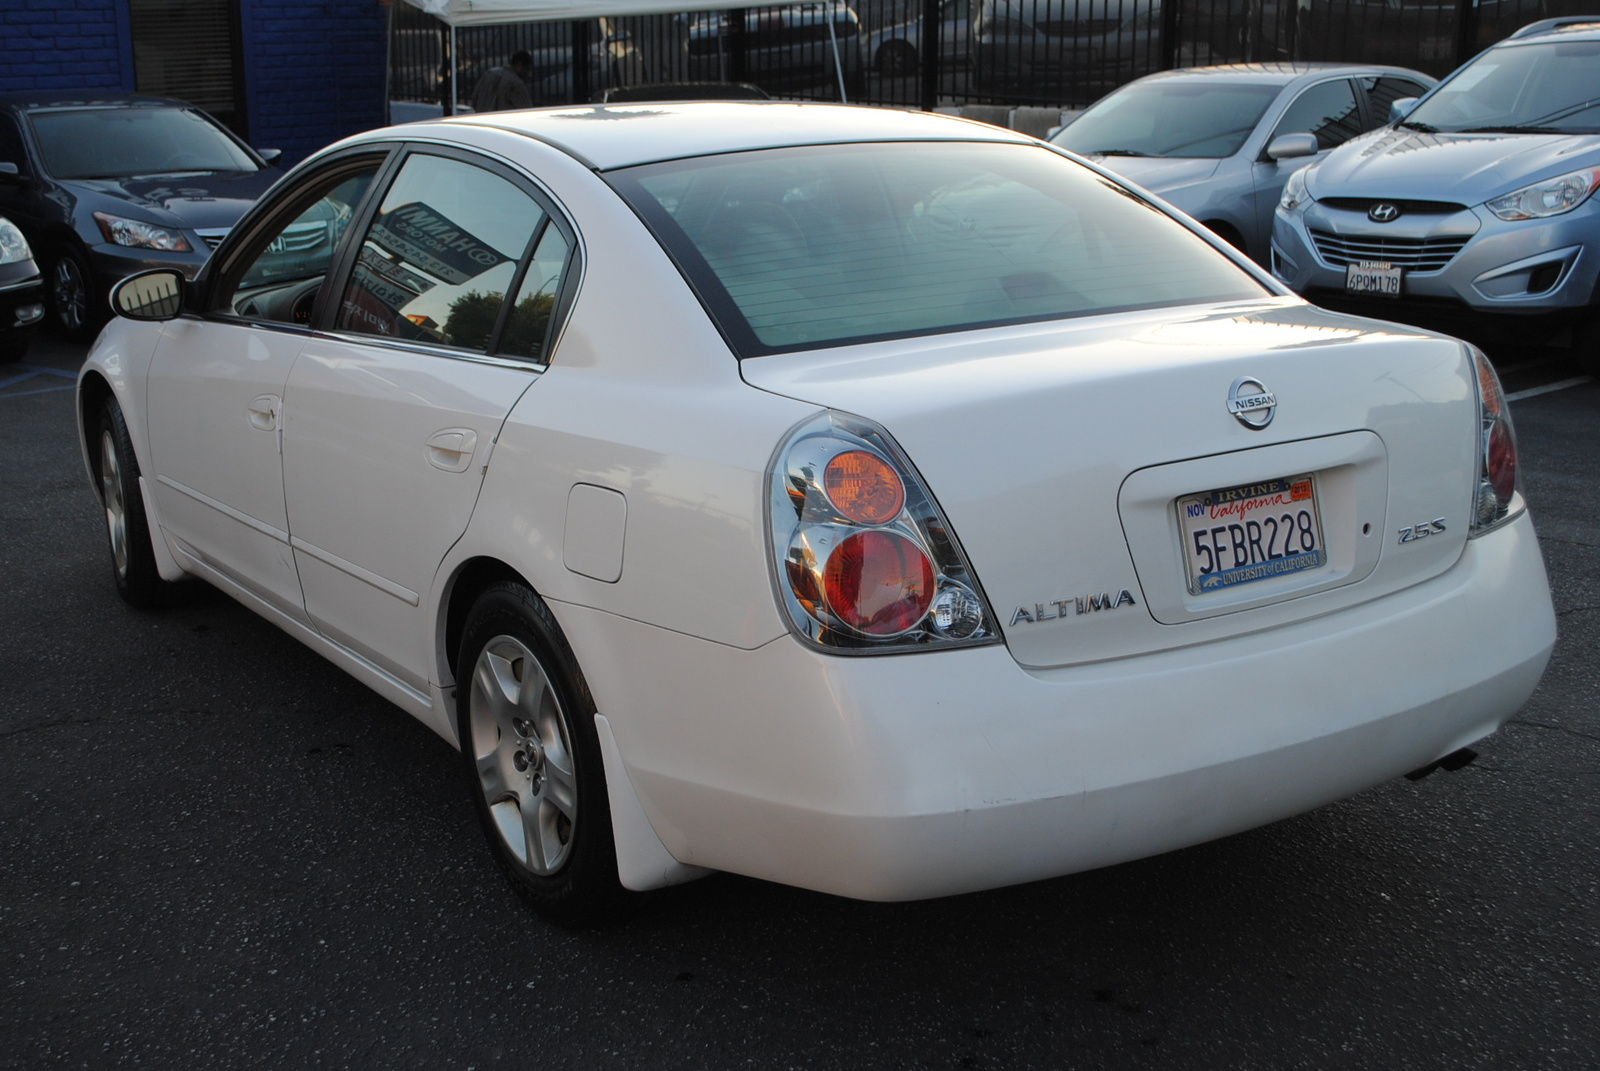 09 nissan maxima sv specs as well 2008 Nissan Maxima Pictures C9099 pi13275212 moreover 1990 Nissan Maxima further Exterior 69937232 further 2004 Nissan Altima Pictures C2985 pi36455007. on 2012 nissan maxima se 3 5